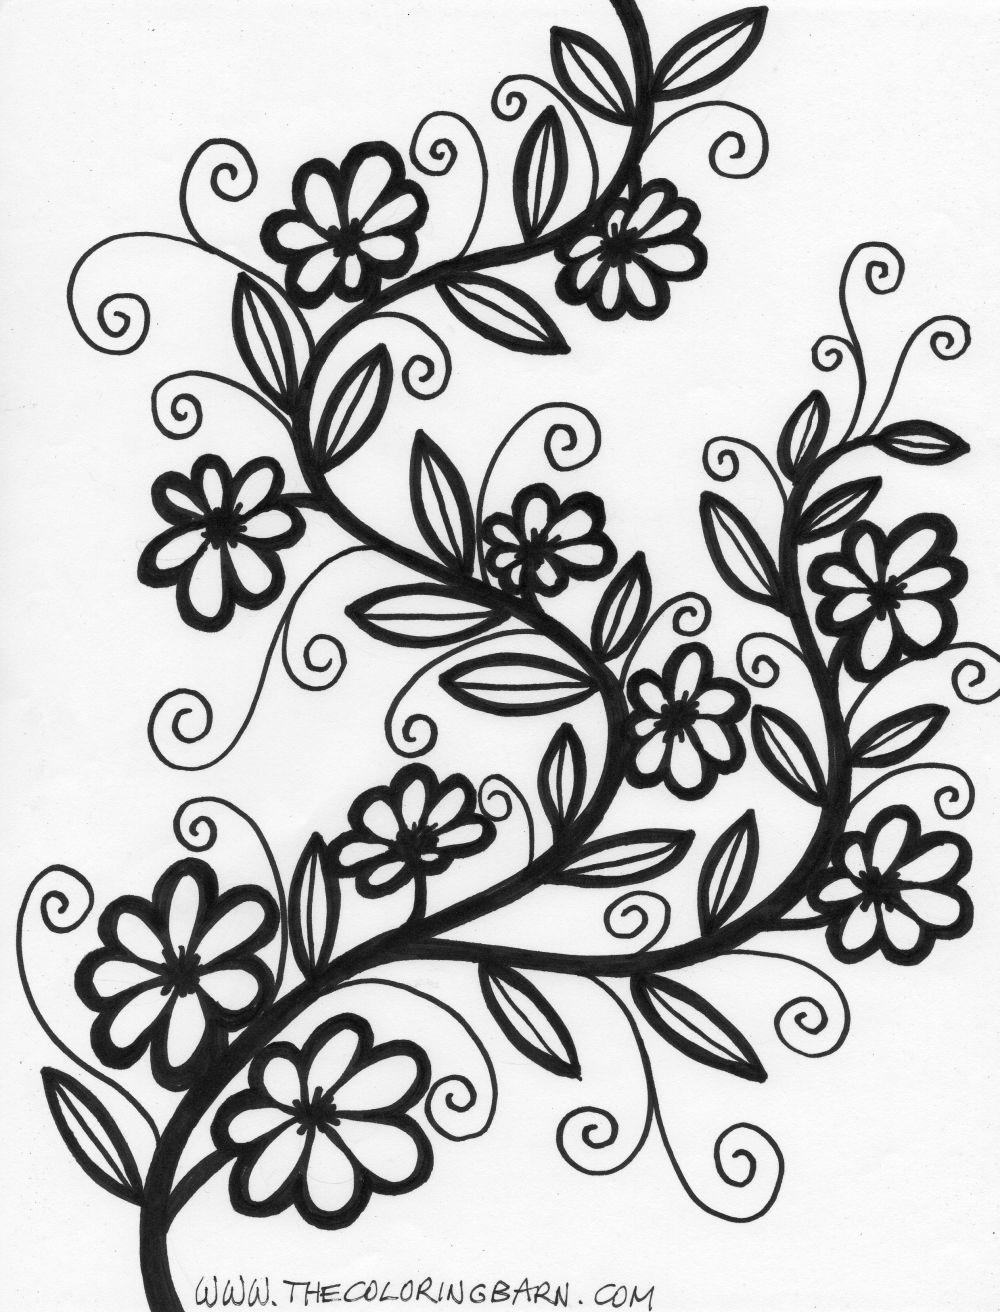 1000x1312 Top Free Printable Pattern Coloring Pages Online Barn, Flower